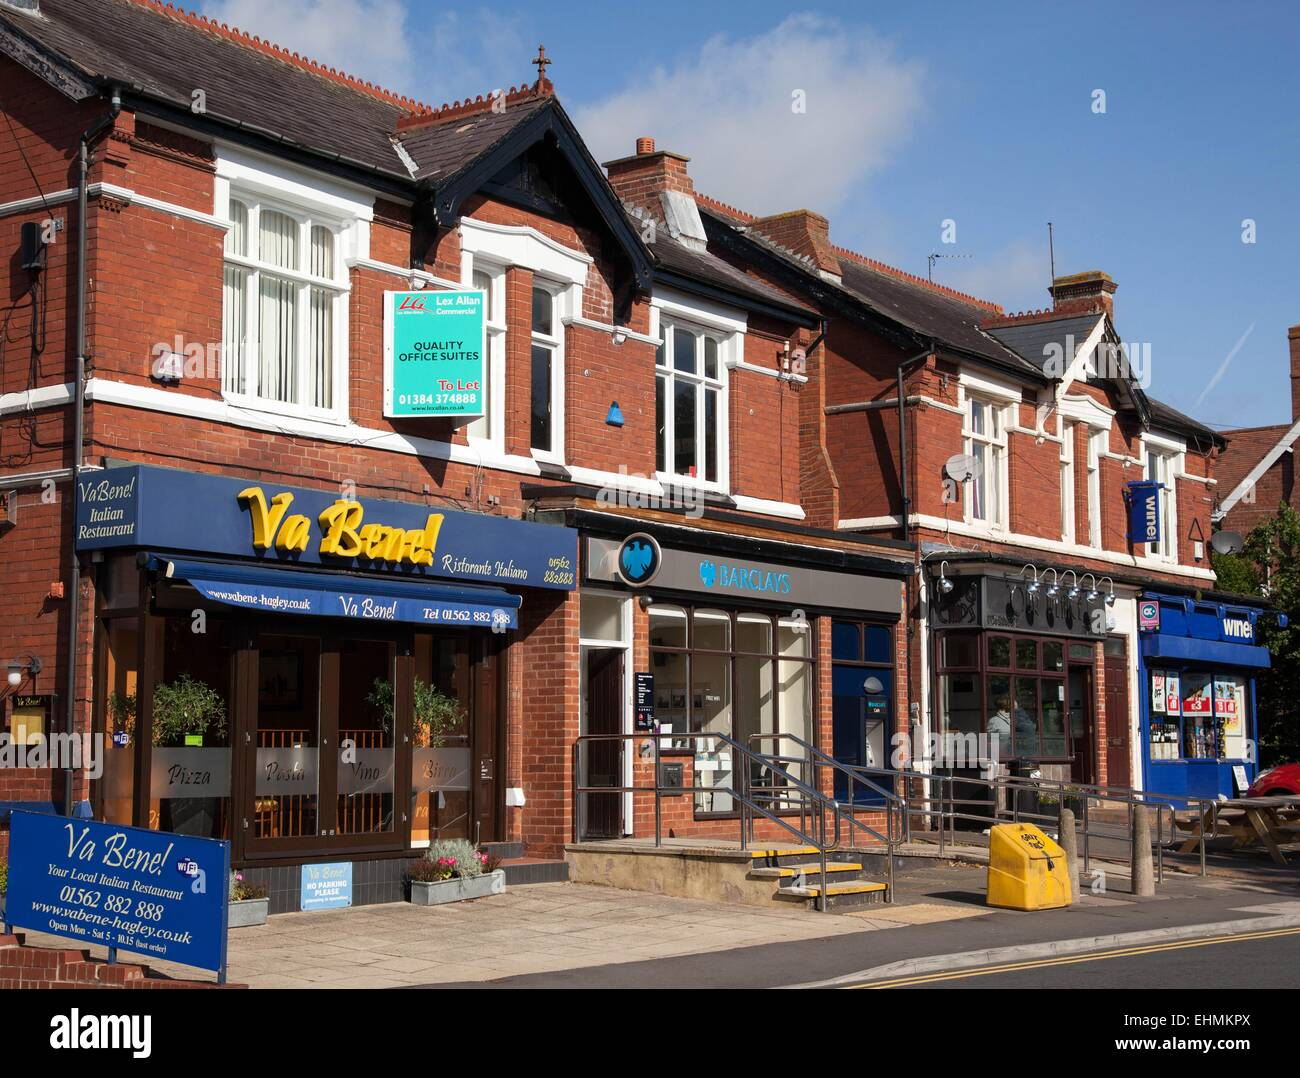 Shopping facilities in Hagley, West Midlands - Stock Image